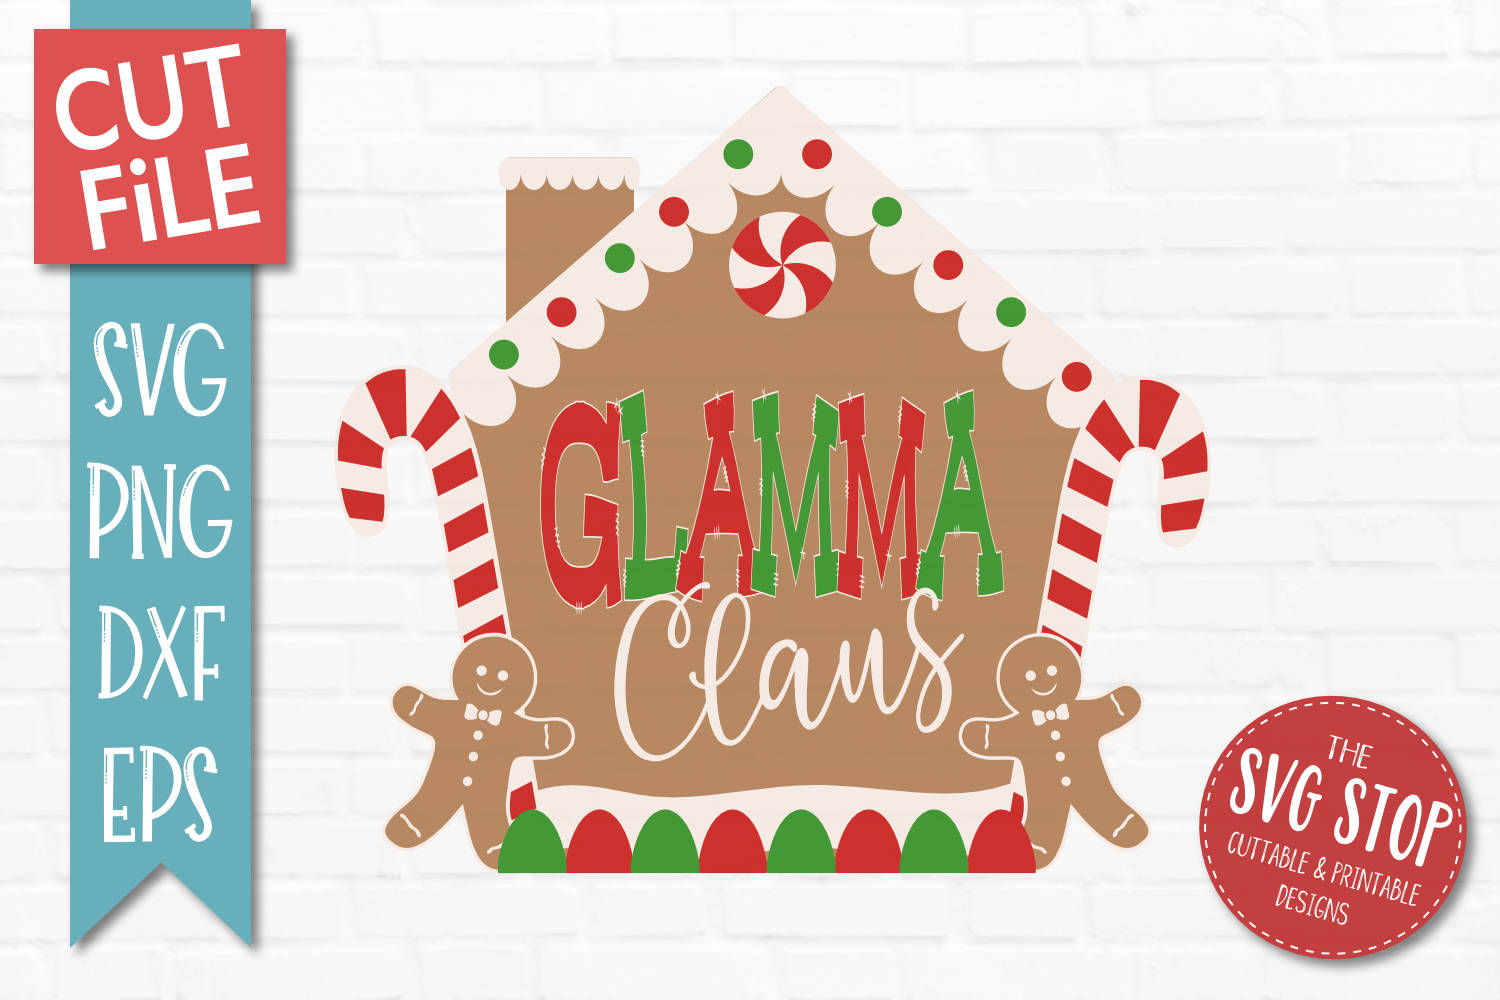 Glamma Claus Gingerbread Christmas SVG, PNG, DXF, EPS example image 1